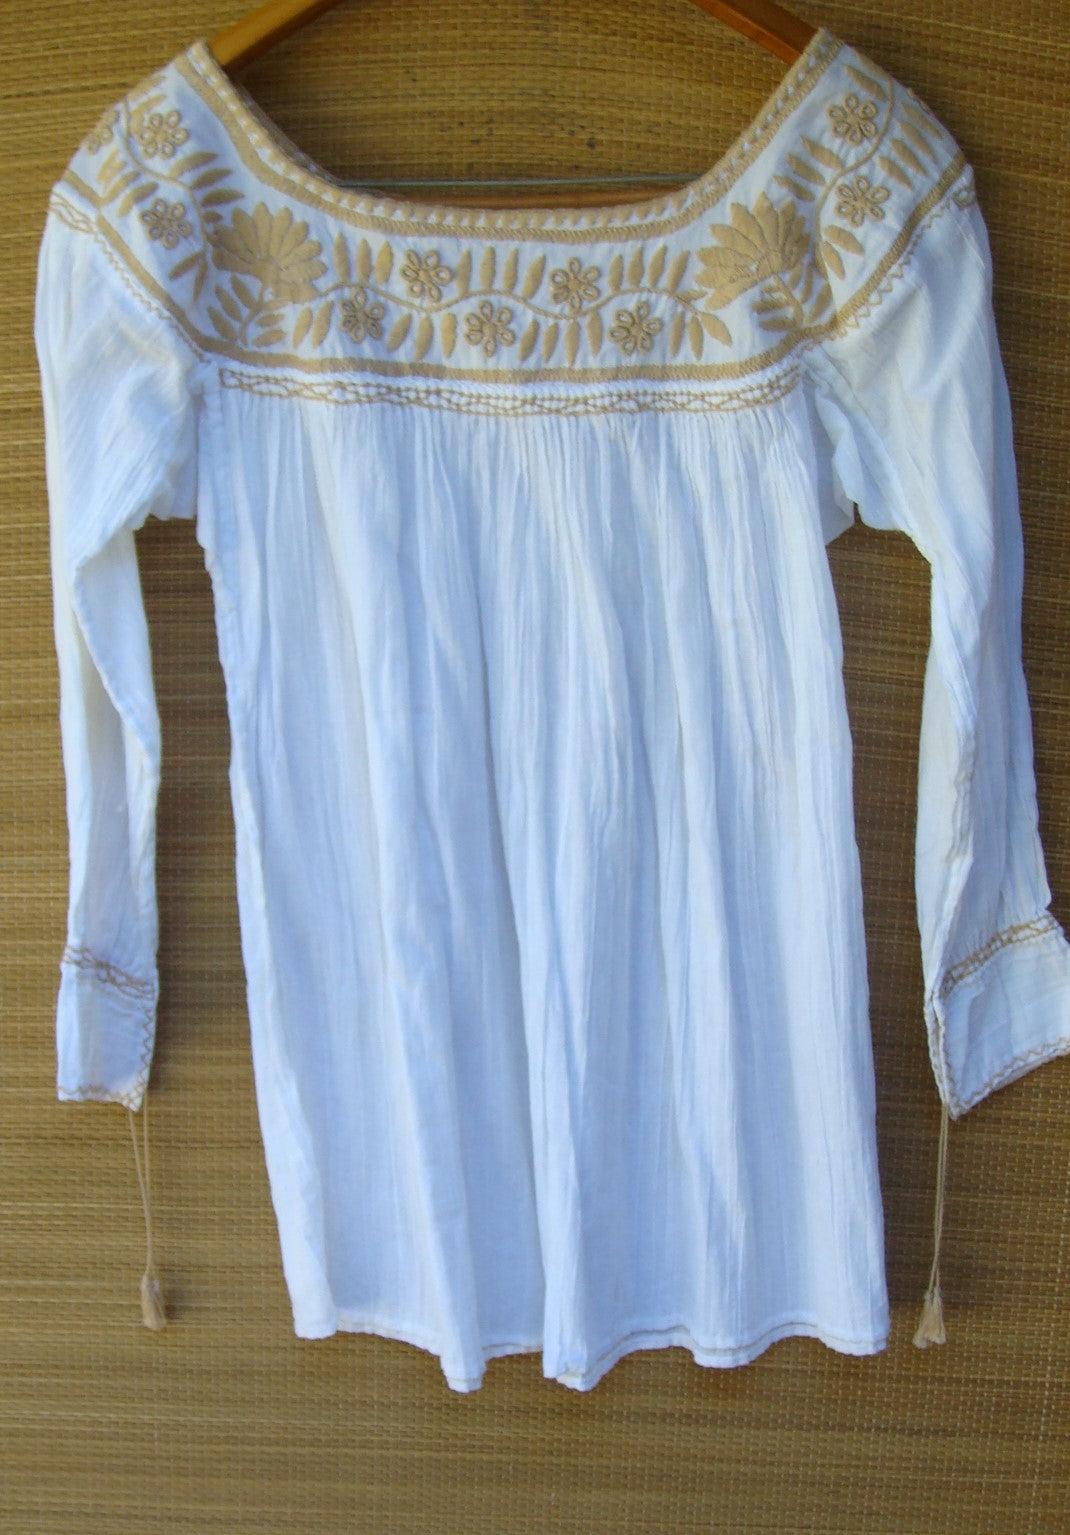 Mexican White with Beige Flowers Peasant Blouse Huipil Hand Embroidery Small